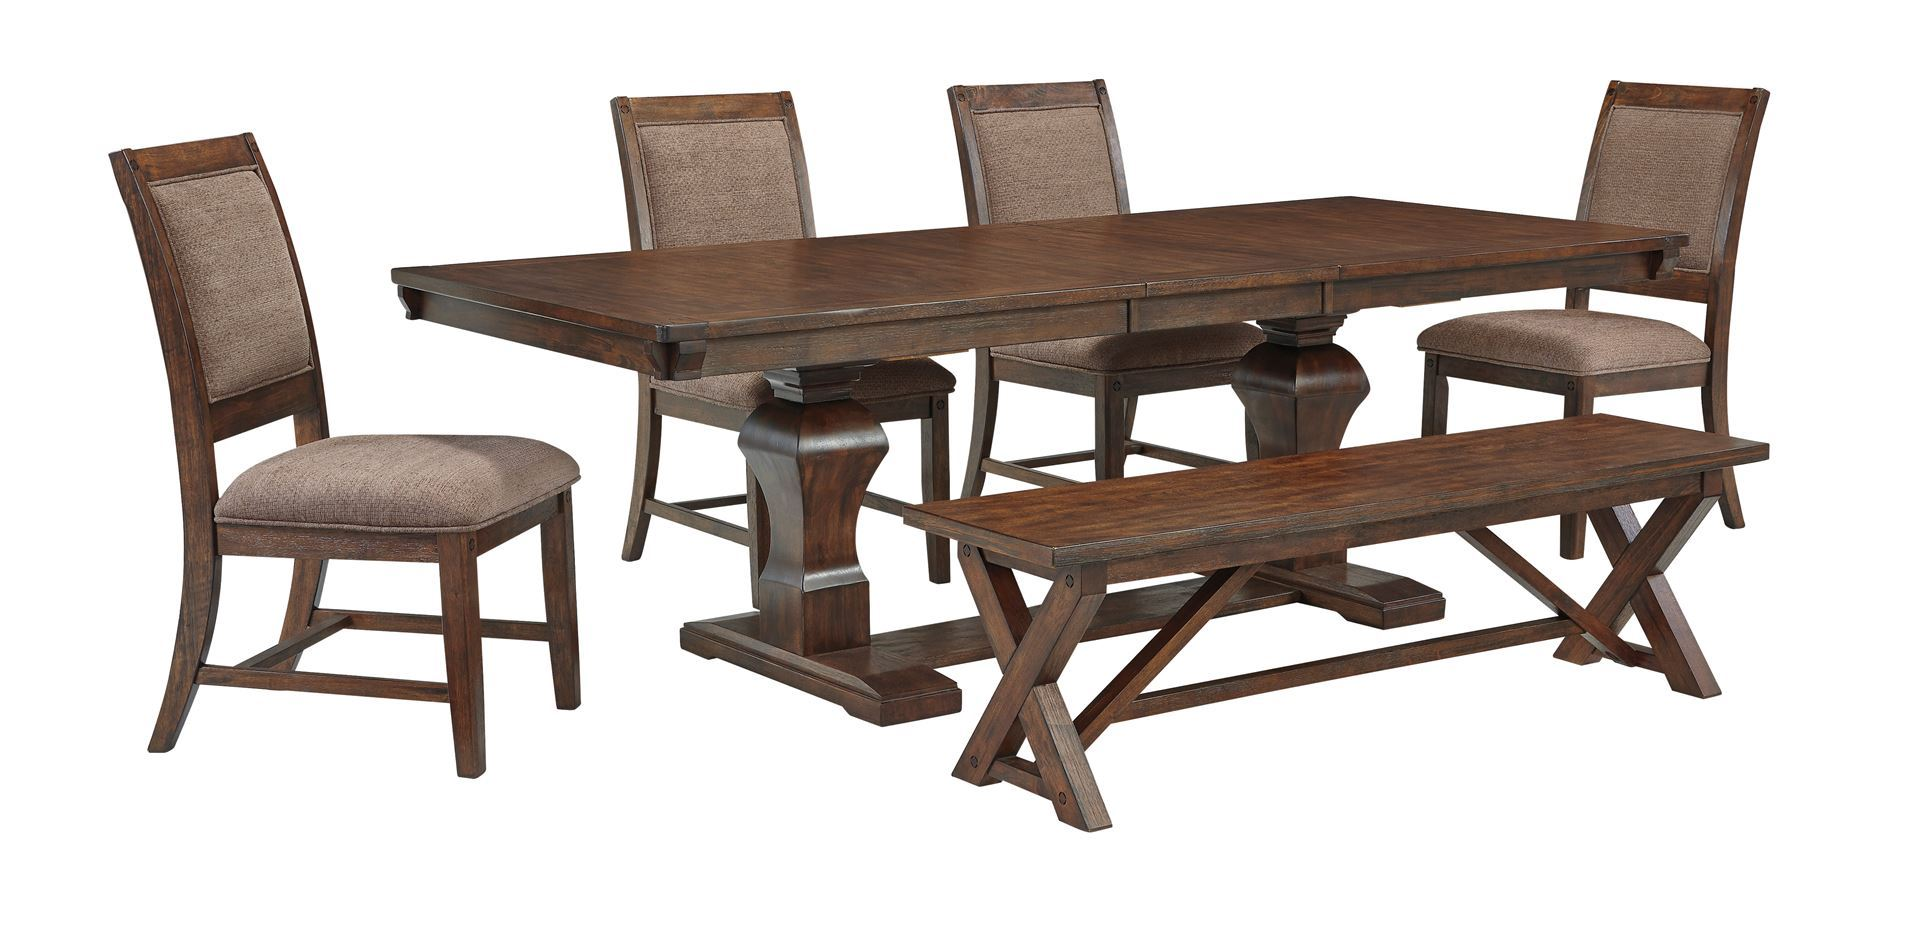 Picture Of Windville Dining Room Set